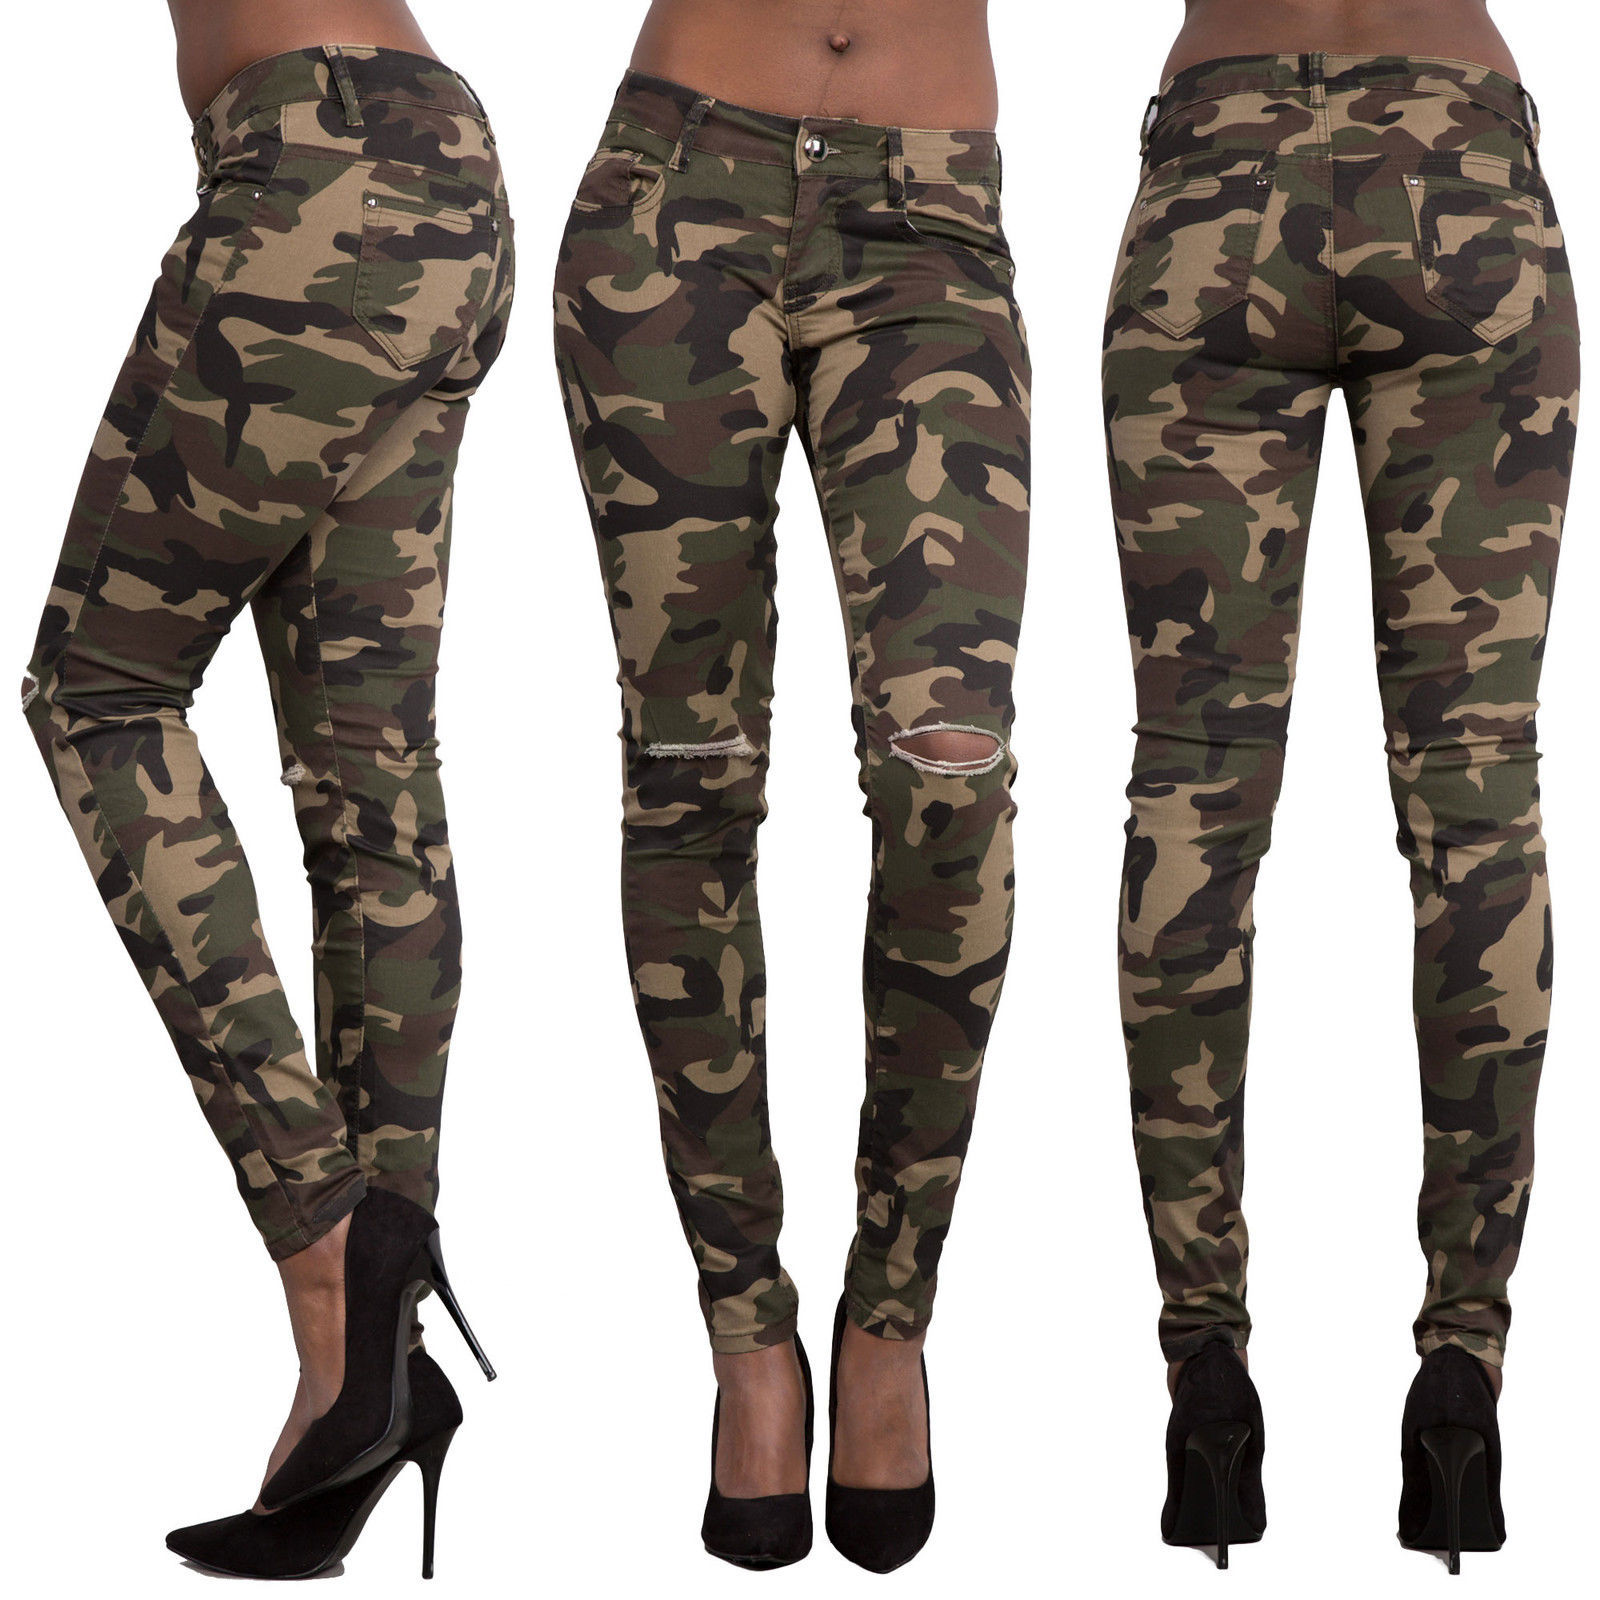 ФОТО American Apparel Fashion Camouflage Stretch Trousers For Women Sexy Casual Military Skinny Ripped Pencil Pants Long Pants